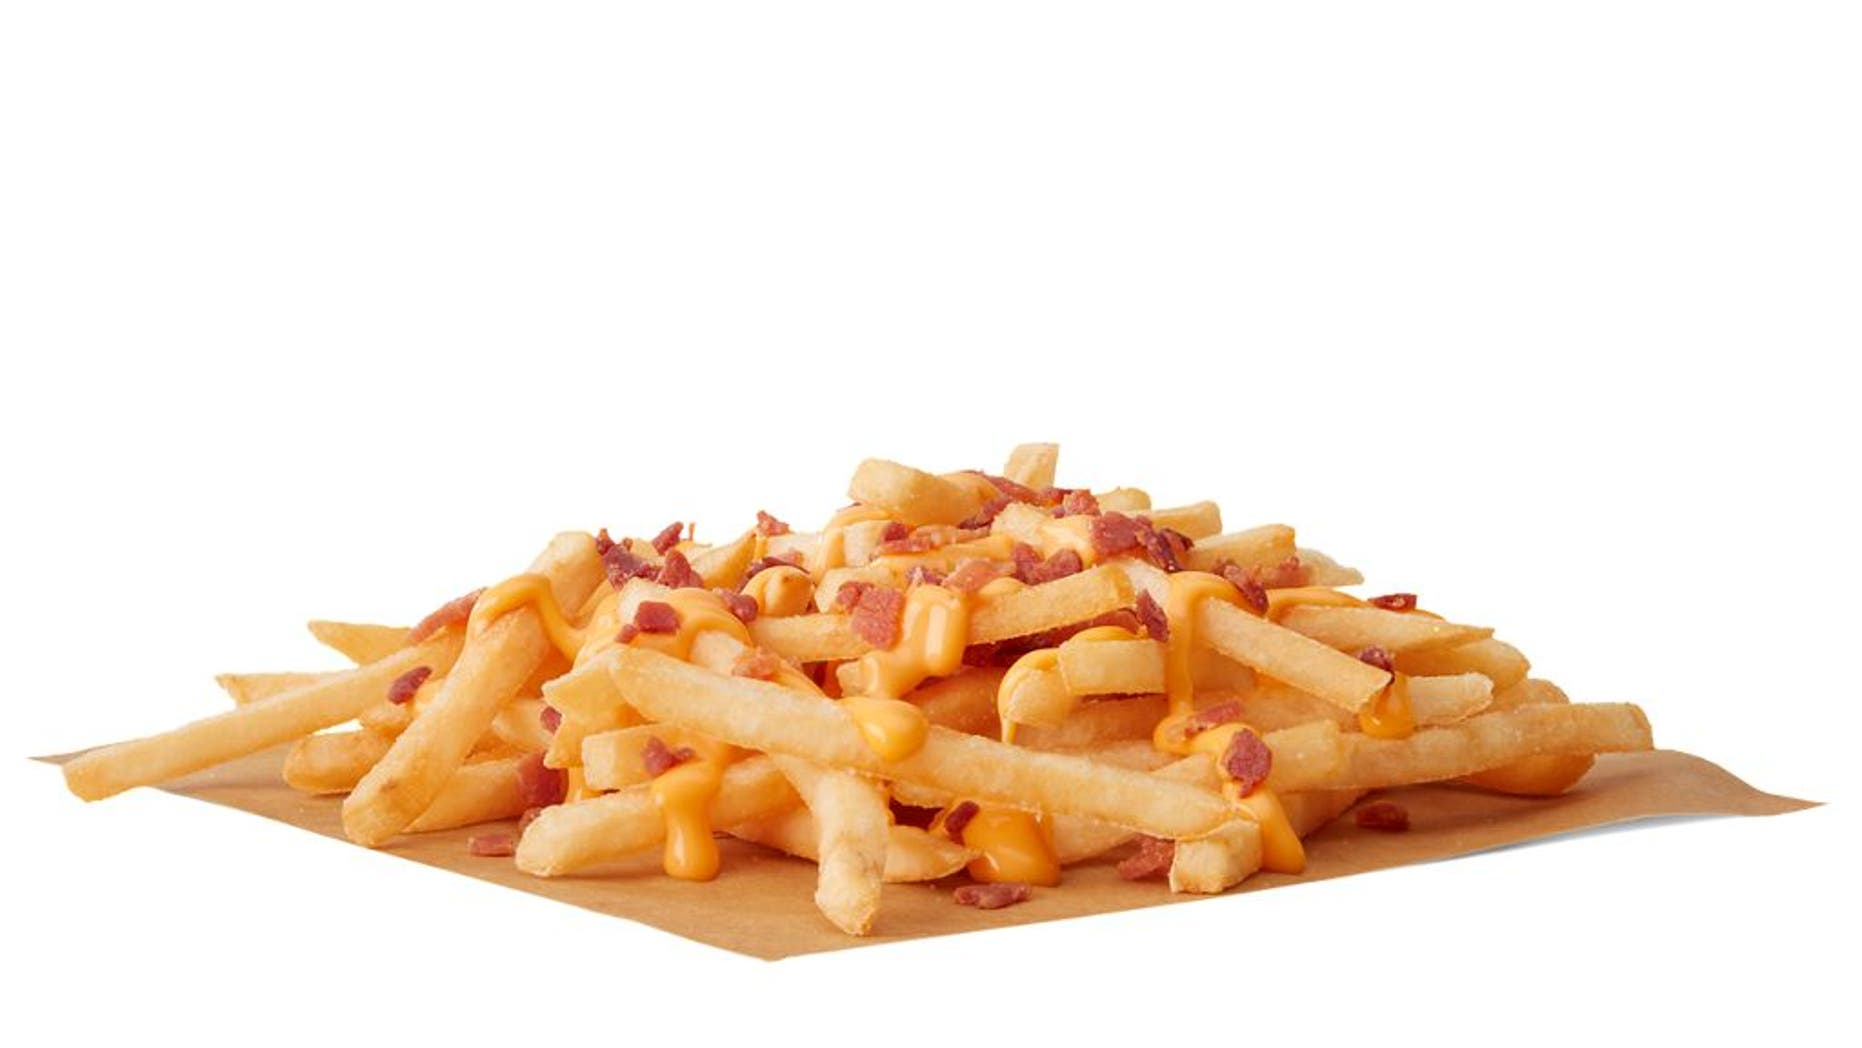 McDonald's french fries are getting a cheesy new look.